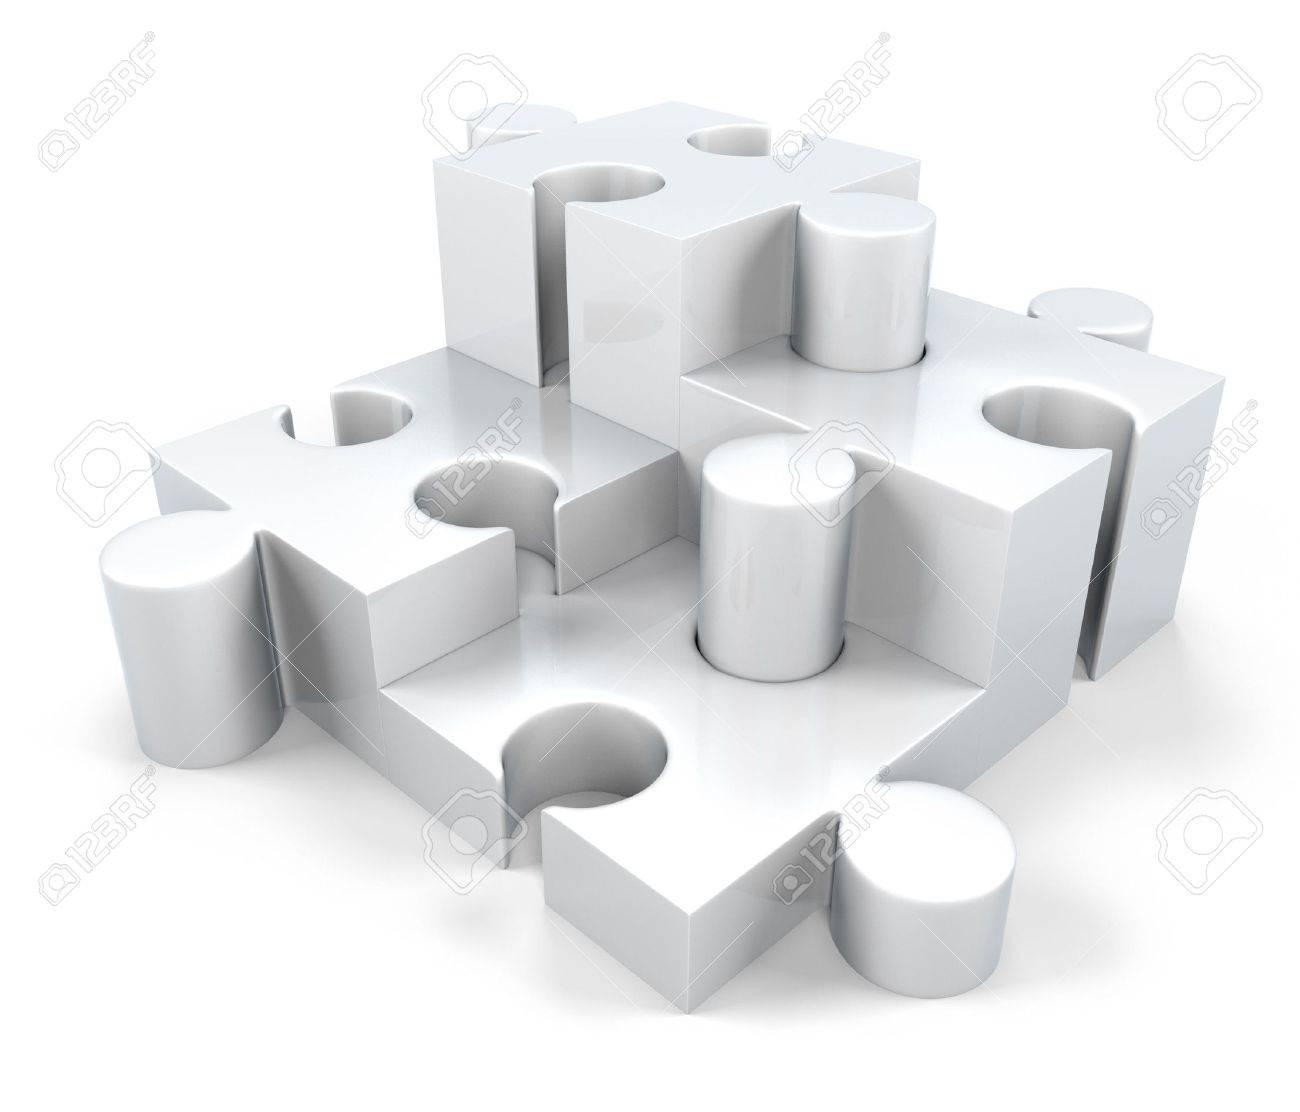 3D White Jigsaw Puzzle Pieces Components Stock Photo